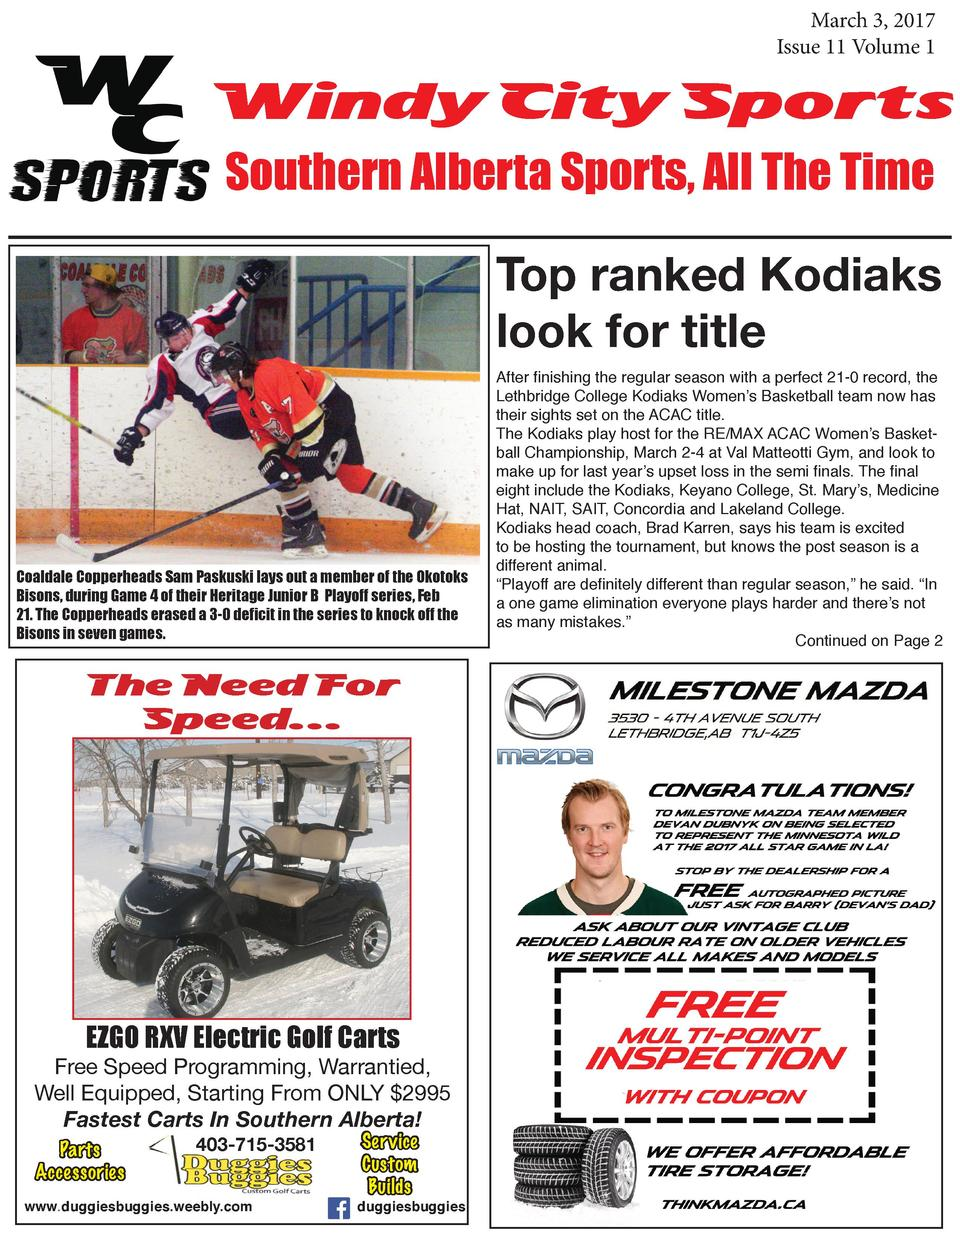 March 3, 2017 Issue 11 Volume 1  Windy City Sports Southern Alberta Sports, All The Time Top ranked Kodiaks look for title...